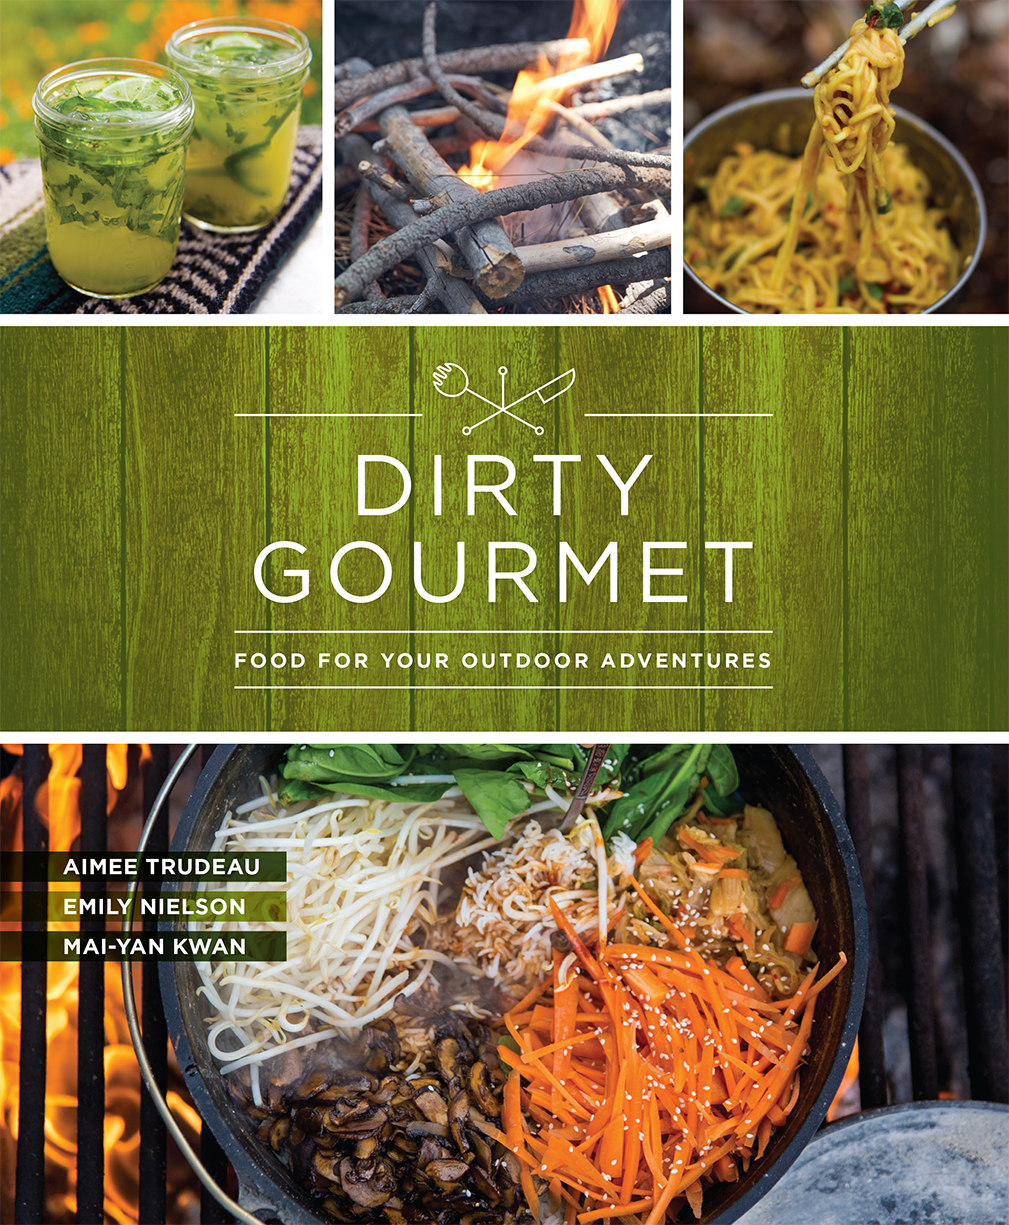 Dirty Gourmet Cookbook Cover